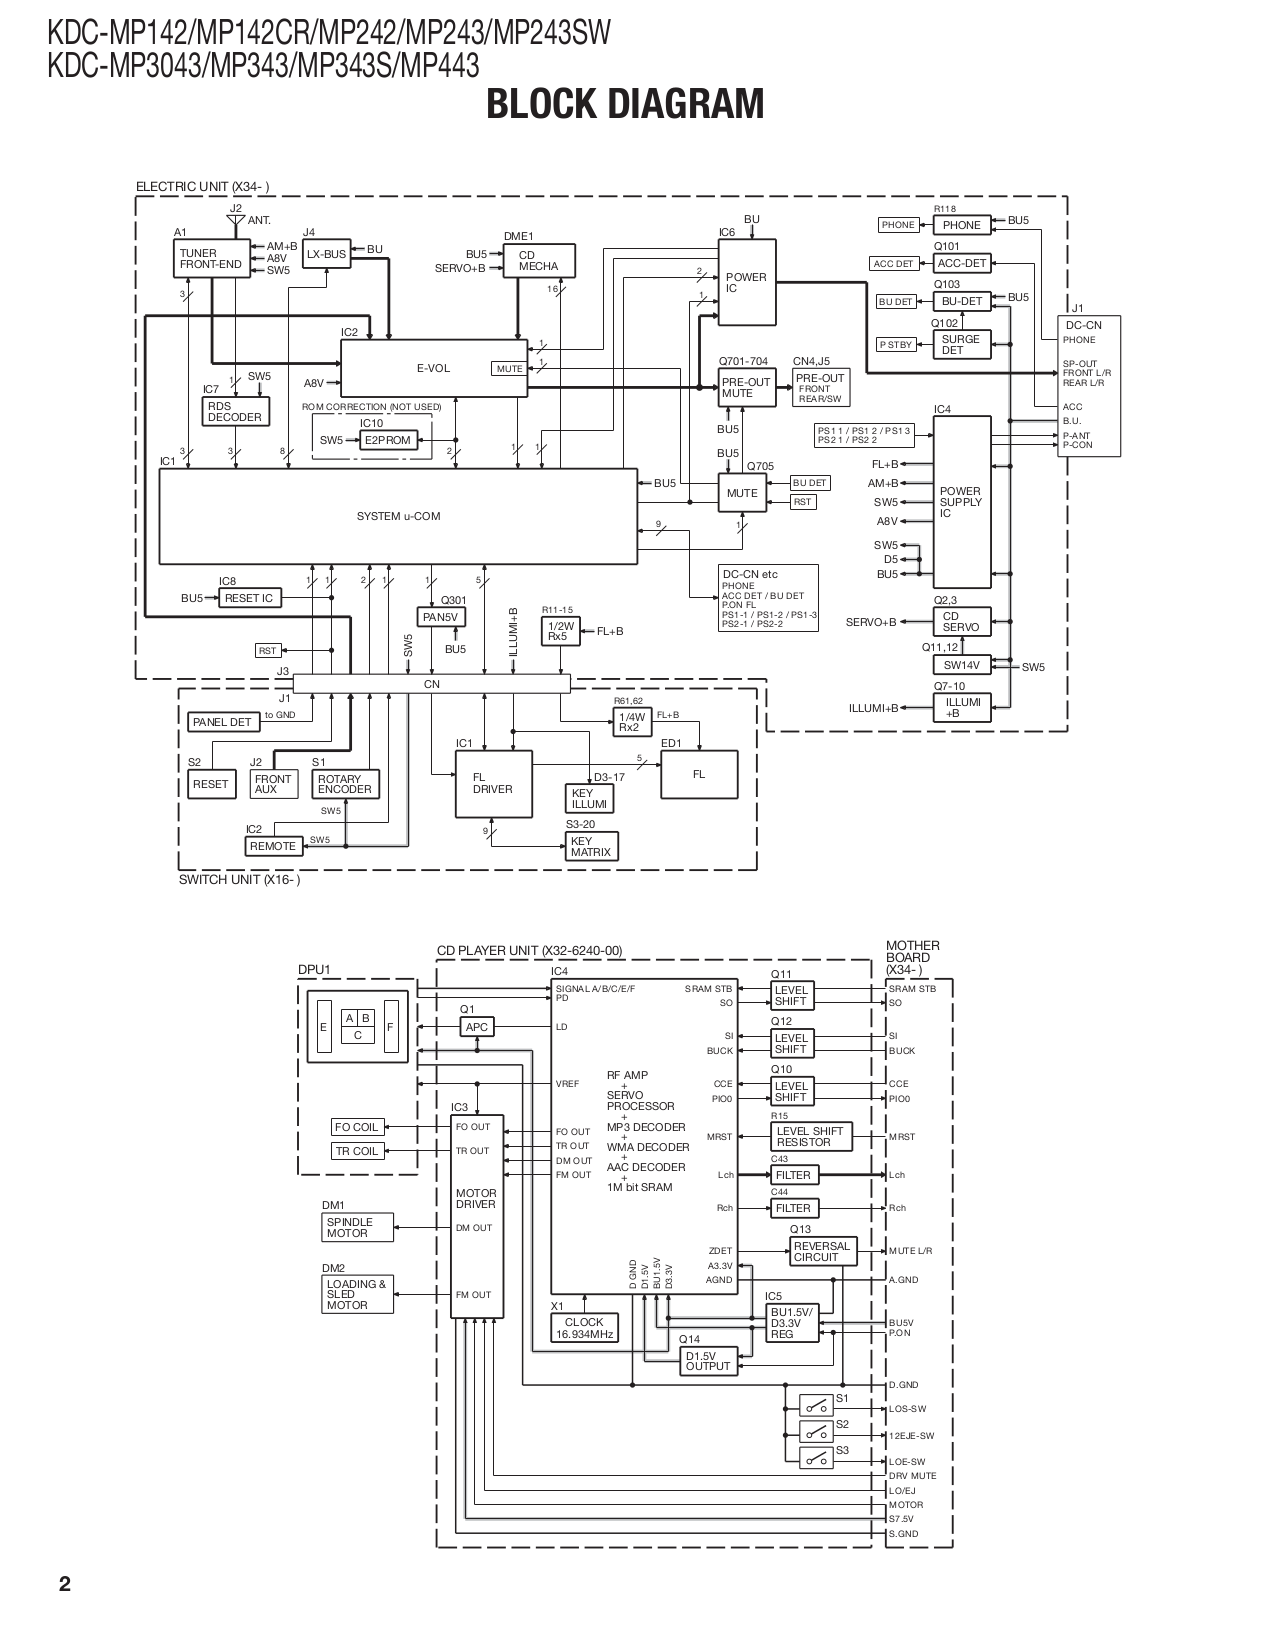 Troubleshooting guide kenwood kdc mp142 peer to peer diagram pdf manual for kenwood car receiver kdc 319 kenwood kdc mp142 242 243 3043 343 443 pooptronica Choice Image